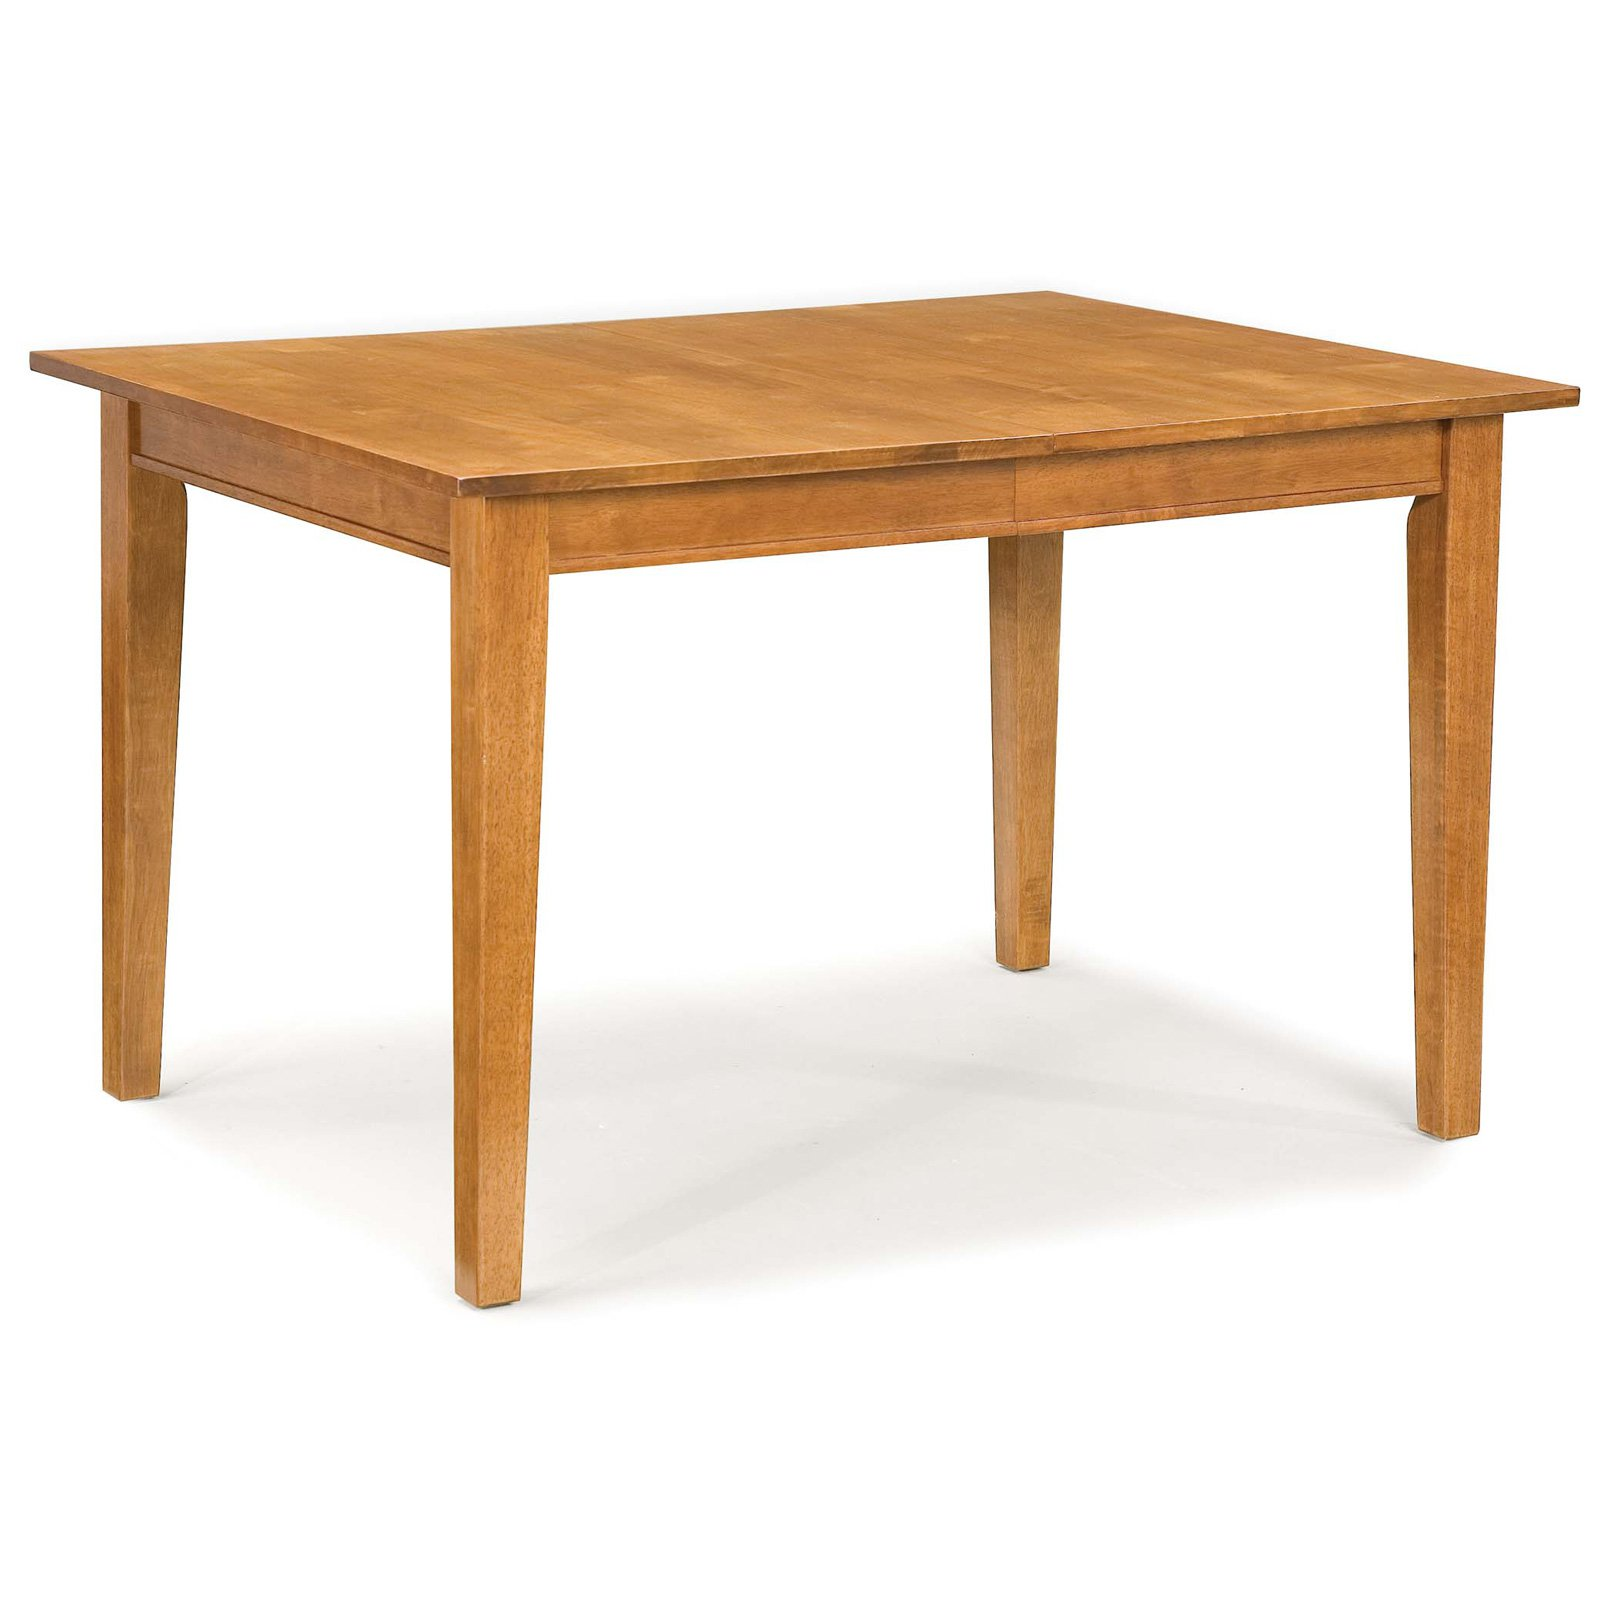 Home Styles Arts & Crafts Dining Table, Cottage Oak